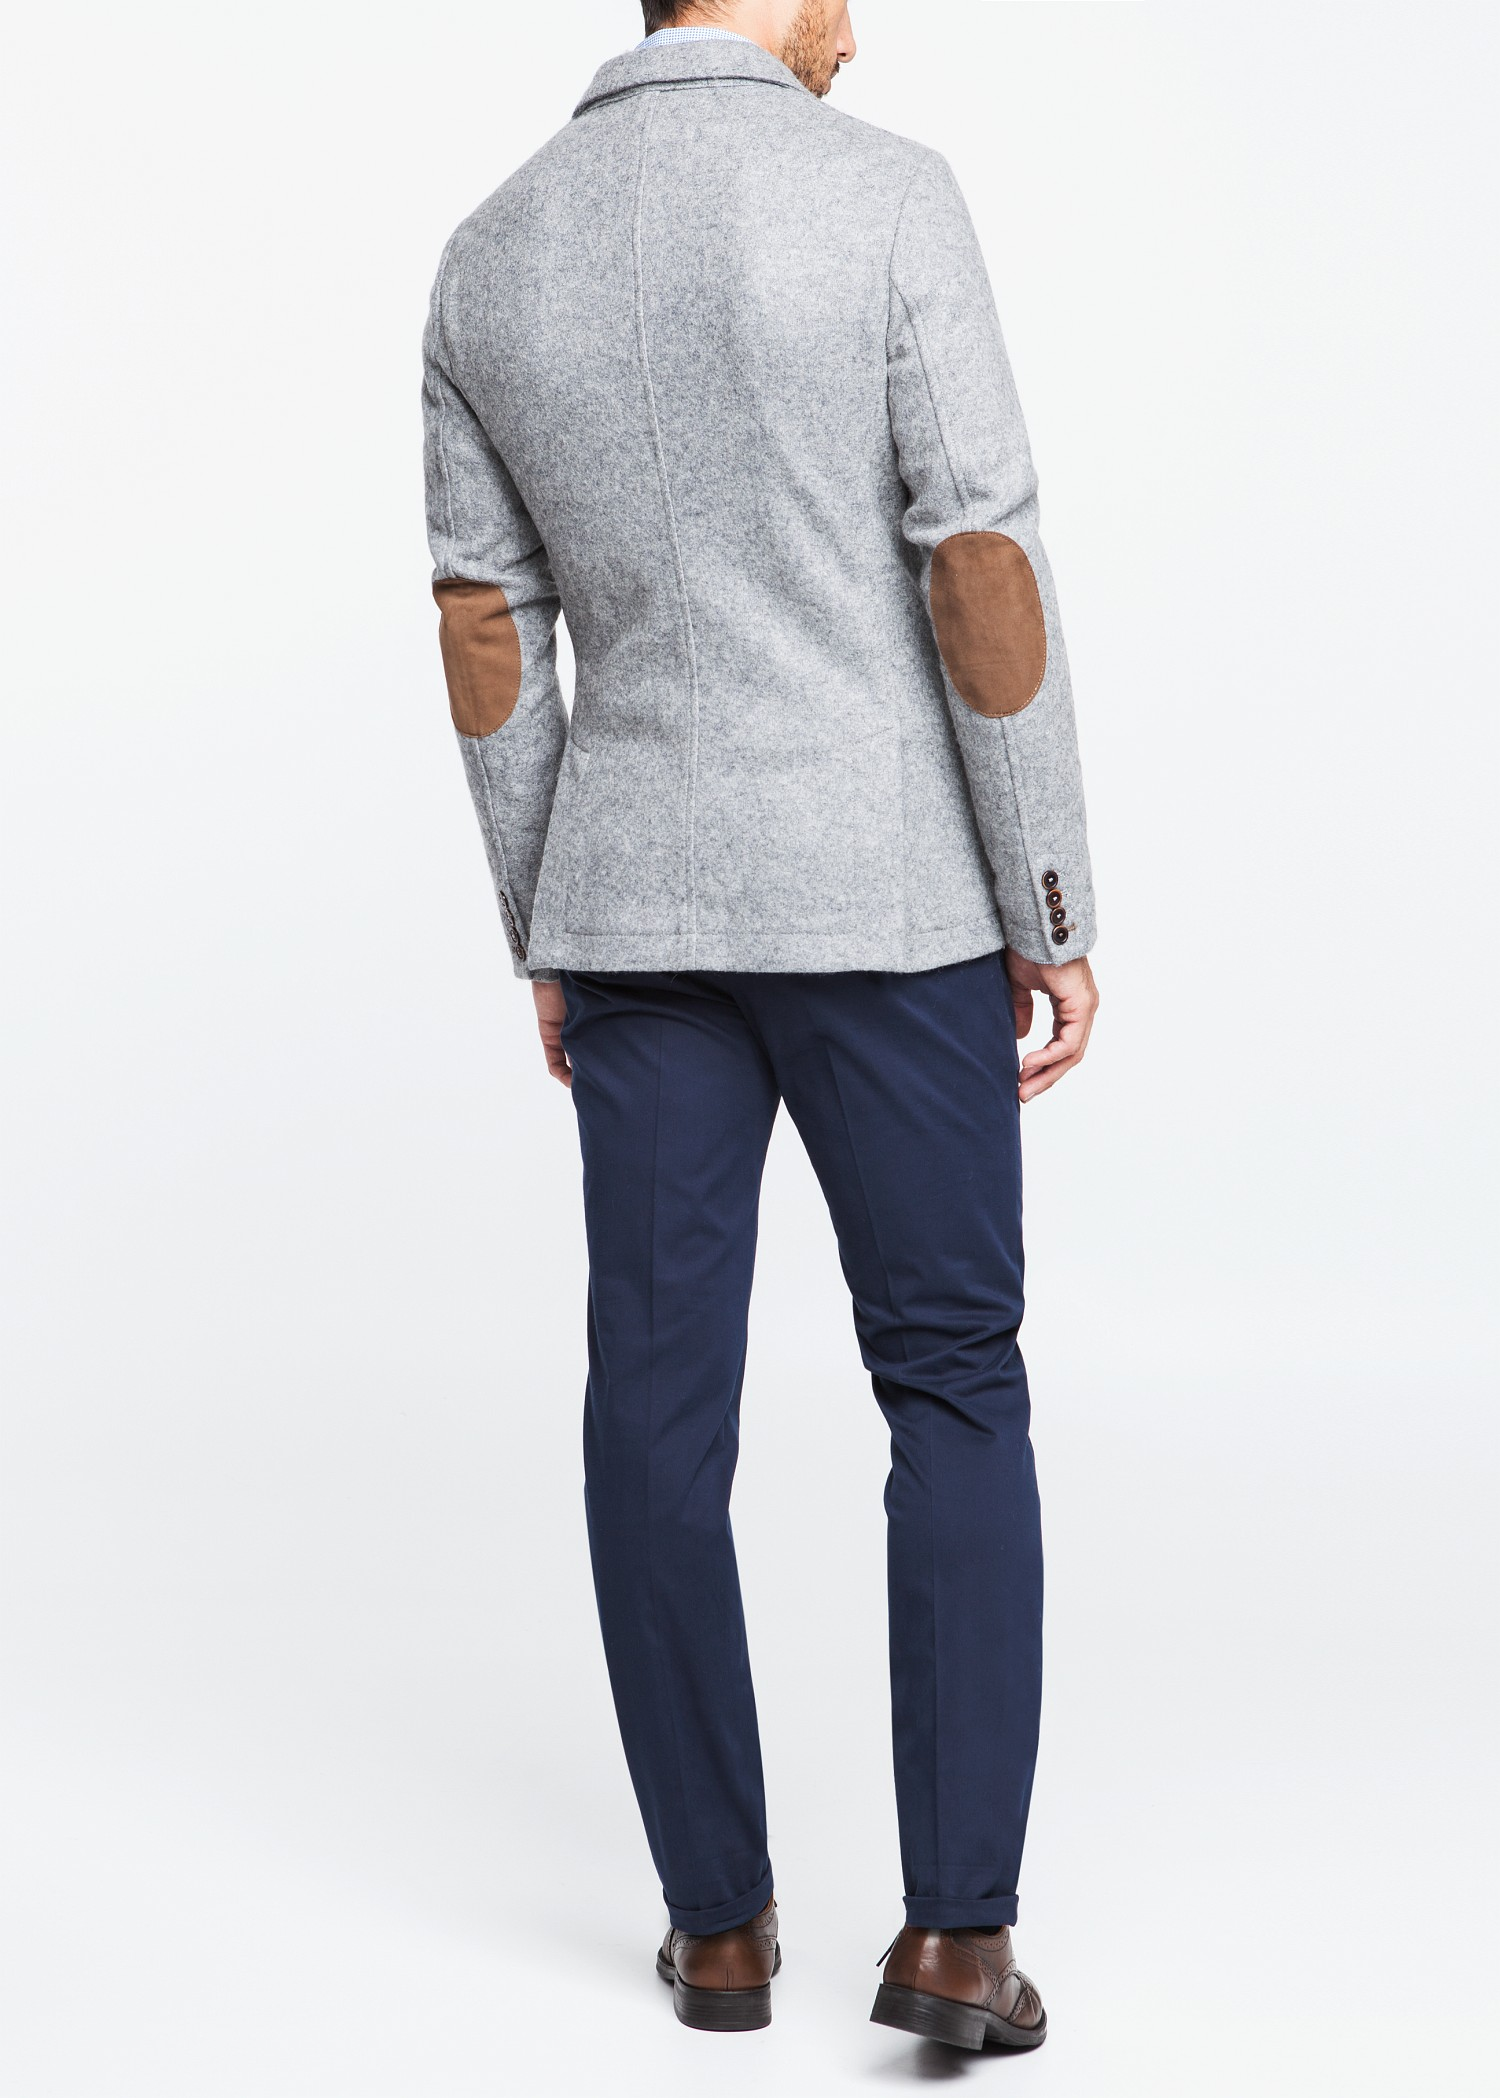 Shop for men's mens elbow patches jacket online at Men's Wearhouse. Browse the latest mens elbow patches jacket styles & selection from r0nd.tk, the leader in men's apparel. FREE Shipping on orders $99+!